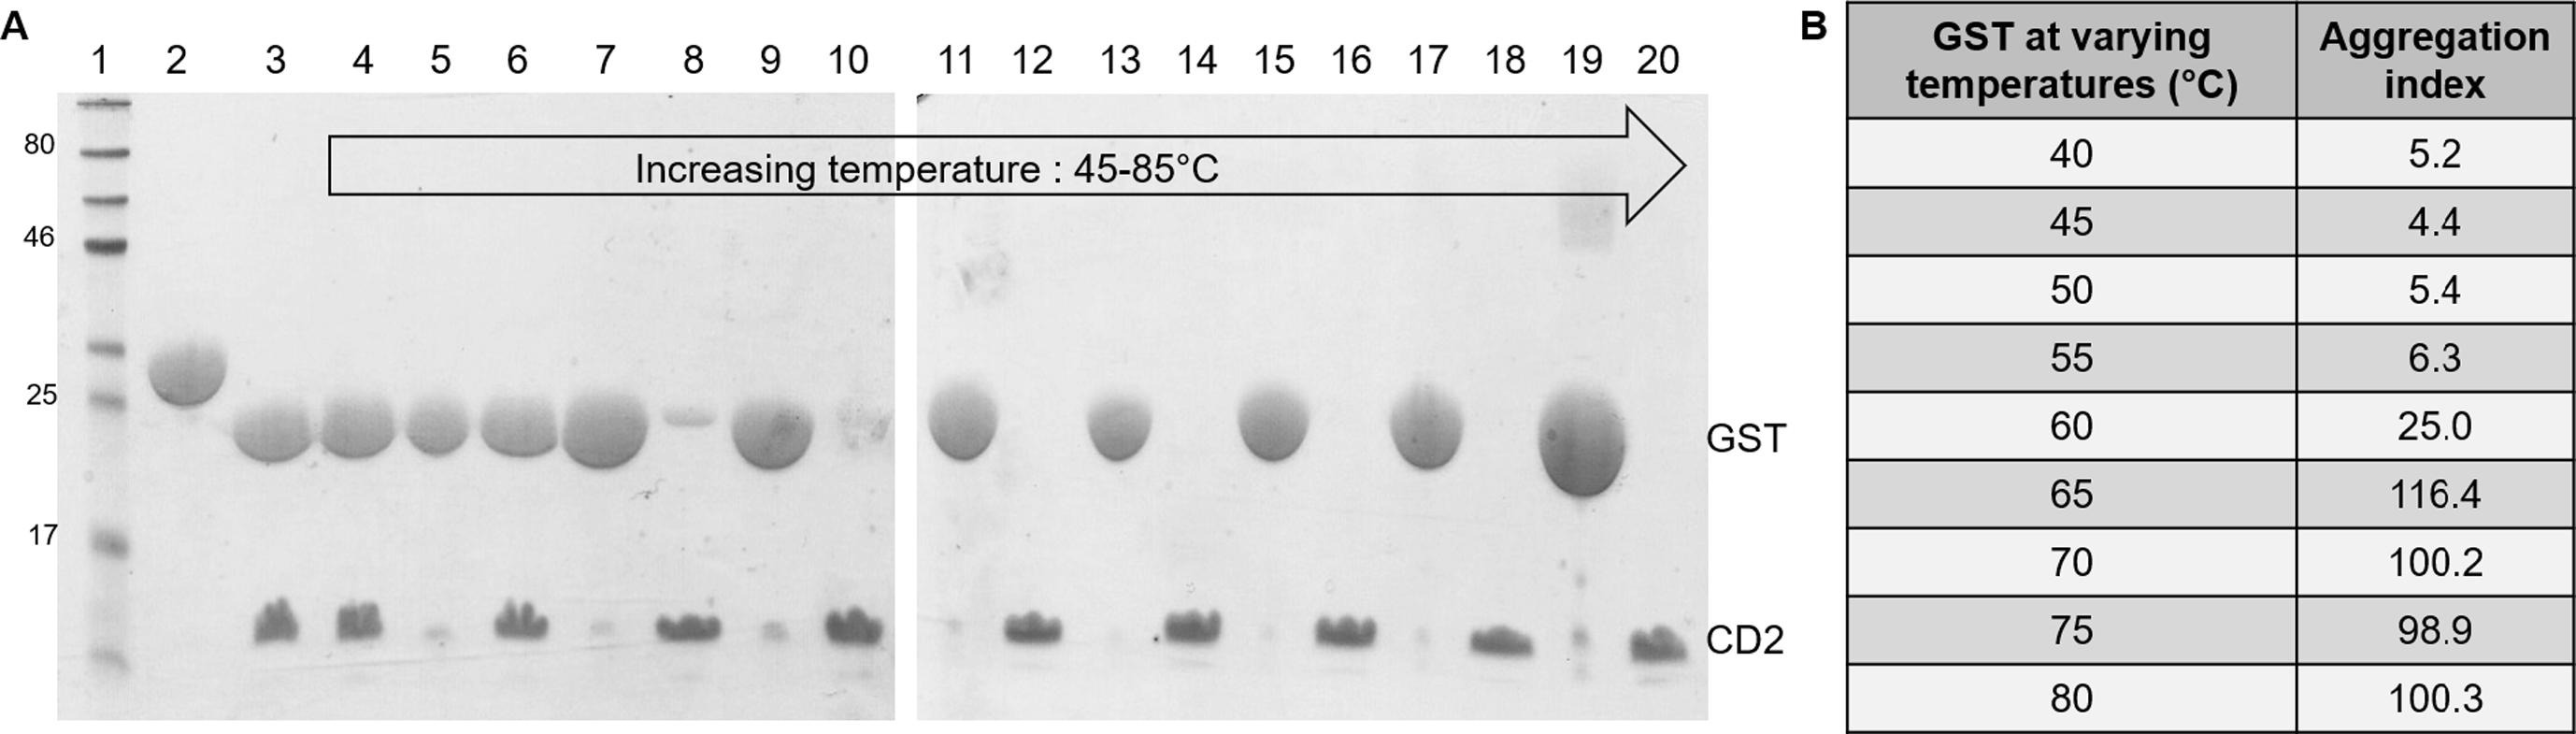 Fig. 2. A) SDS-PAGEs of heat treatment: lane-1 pre-stained protein marker, lane-2 GST-CD2, lane-3 cleaved GST CD2, lane-4 supernatant 45 °C, lane-5 pellet 50 °C, lane-6 supernatant 50 °C, lane-7 pellet 55 °C, lane-8 supernatant 55 °C, lane-9 pellet 60 °C, lane-10 supernatant 60 °C, lane-11 pellet 65 °C, lane-12 supernatant 65 °C, lane-13 pellet 70 °C, lane-14 supernatant 70 °C, lane-15 pellet 75 °C, lane-16 supernatant 75 °C, lane-17 pellet 80 °C, lane-18 supernatant 80 °C, lane-19 pellet 85 °C, lane-20 supernatant 85 °C. B) Absorbance of pure GST-tag monitored its aggregation index at temperatures ranging from 40 to 80 °C.